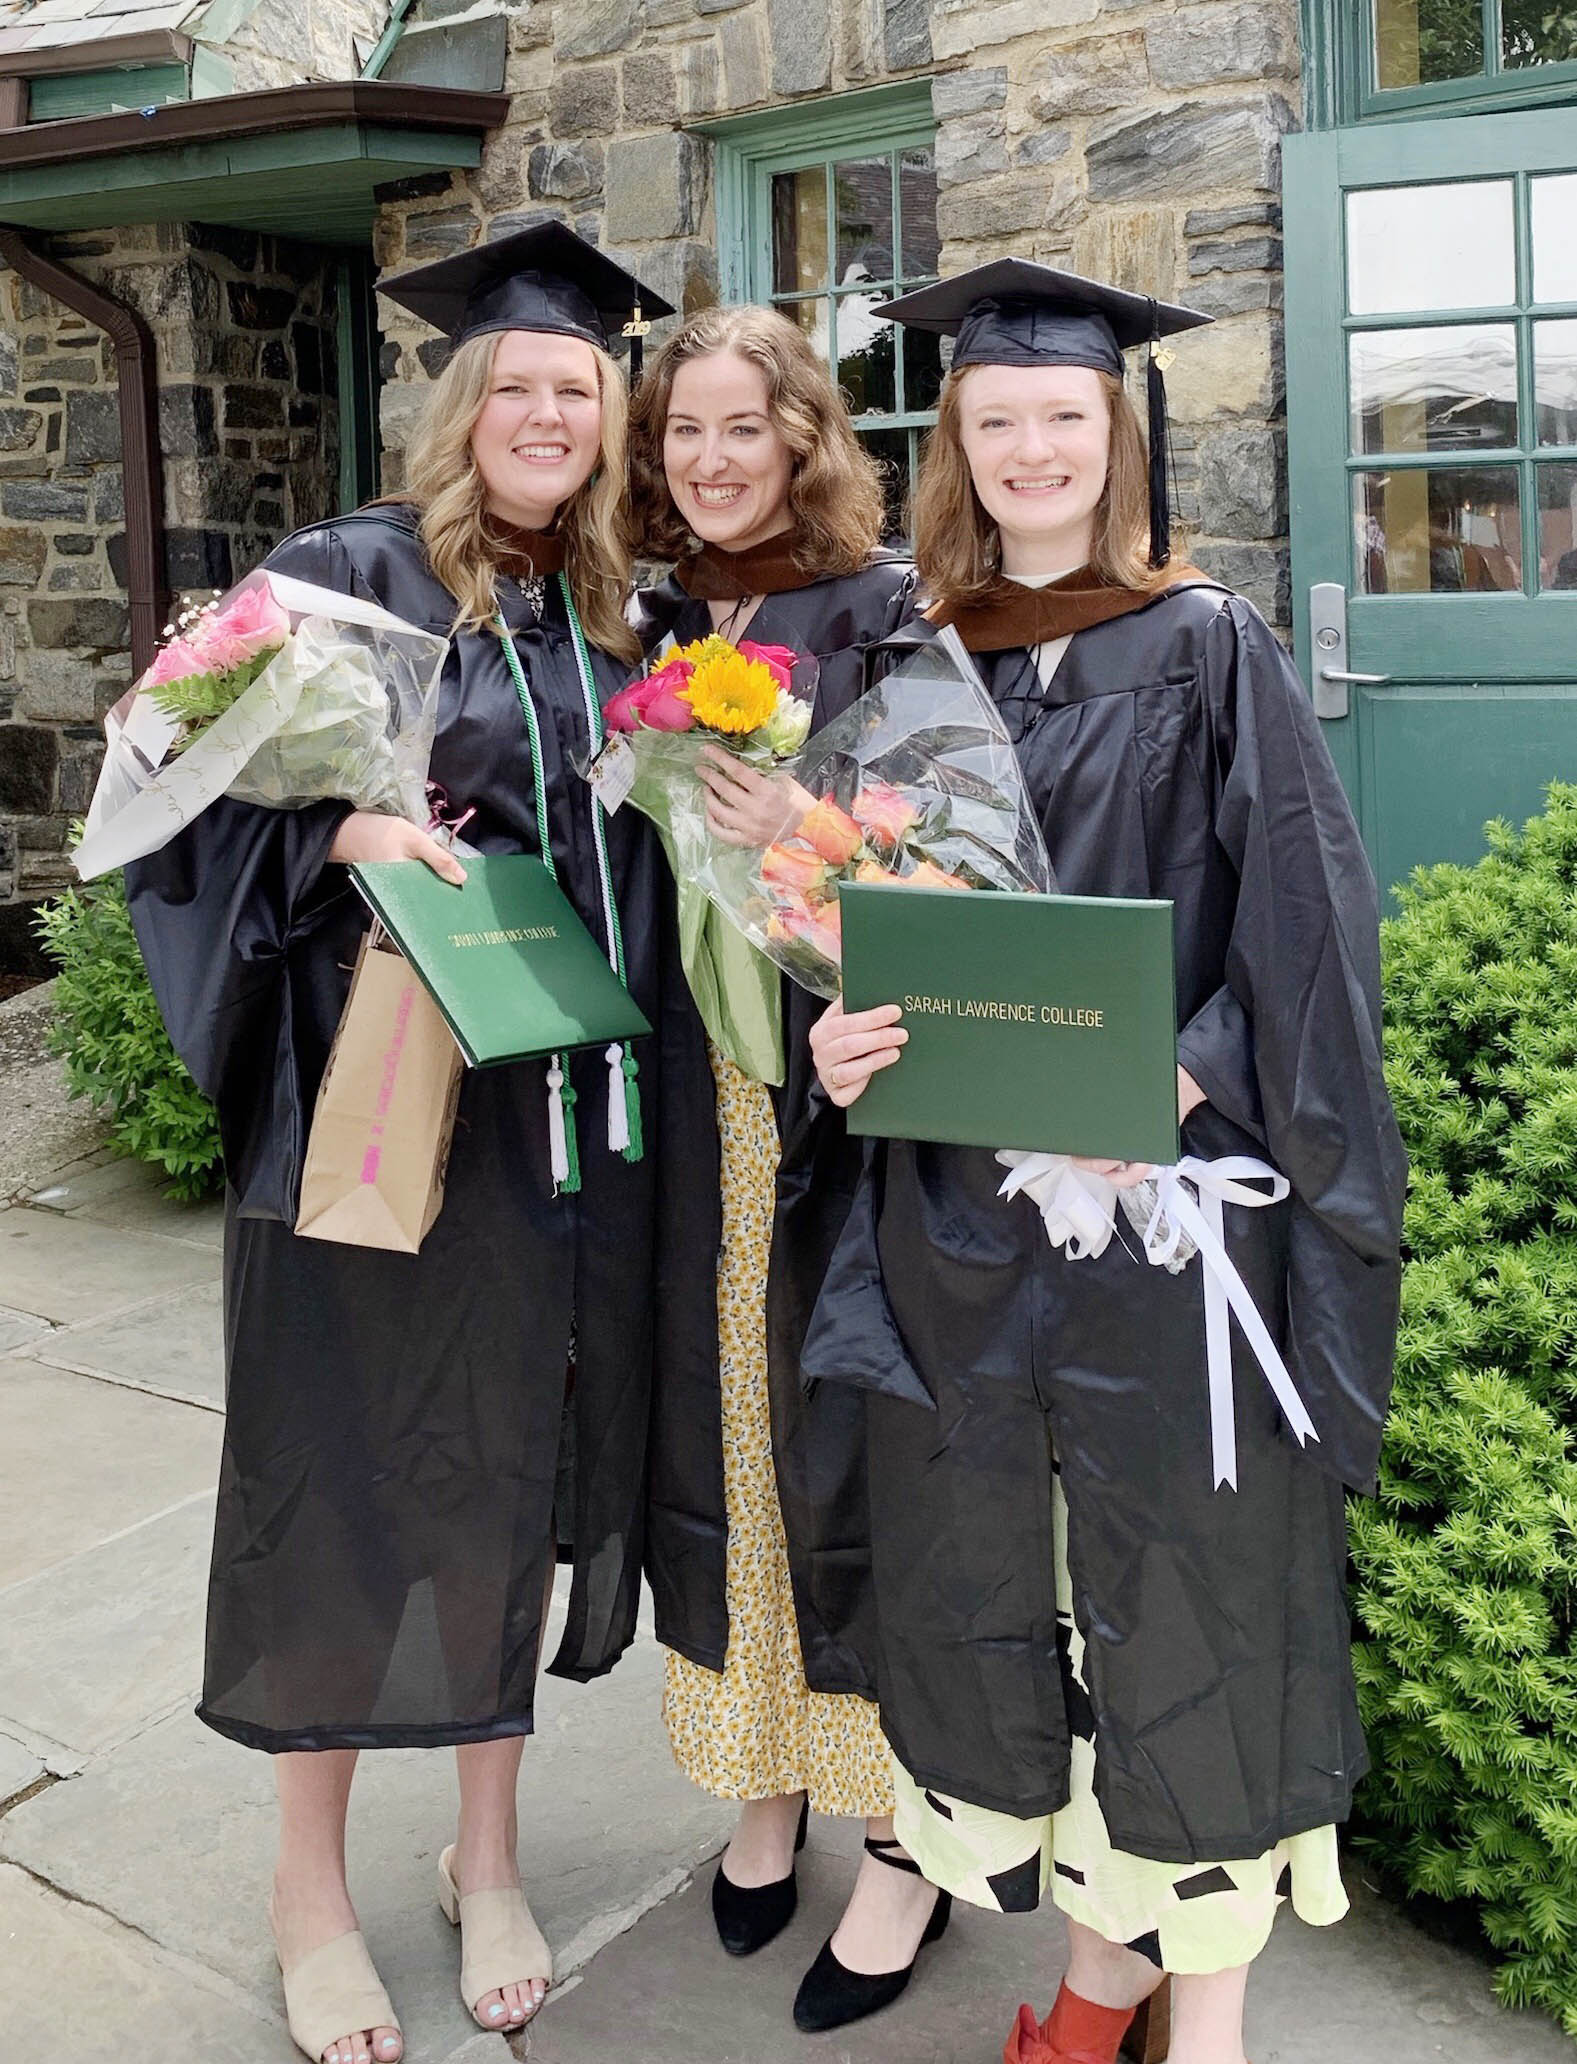 Greer visits with classmates and friends Orli Robin and Maddie Jones after MFA Graduation at Sarah Lawrence College this past May.